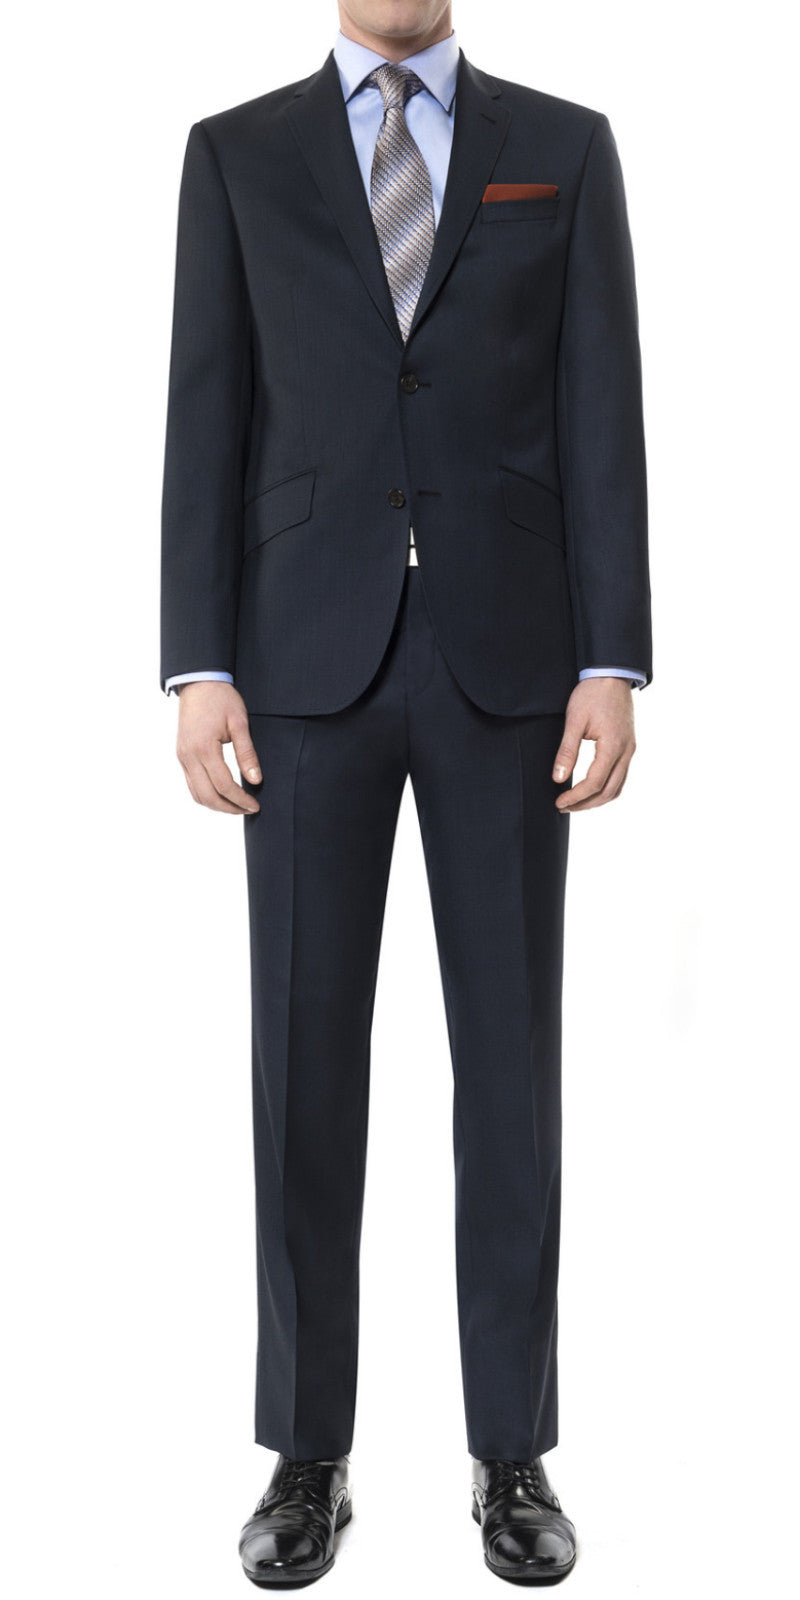 Navy Blue suit by Ted Baker